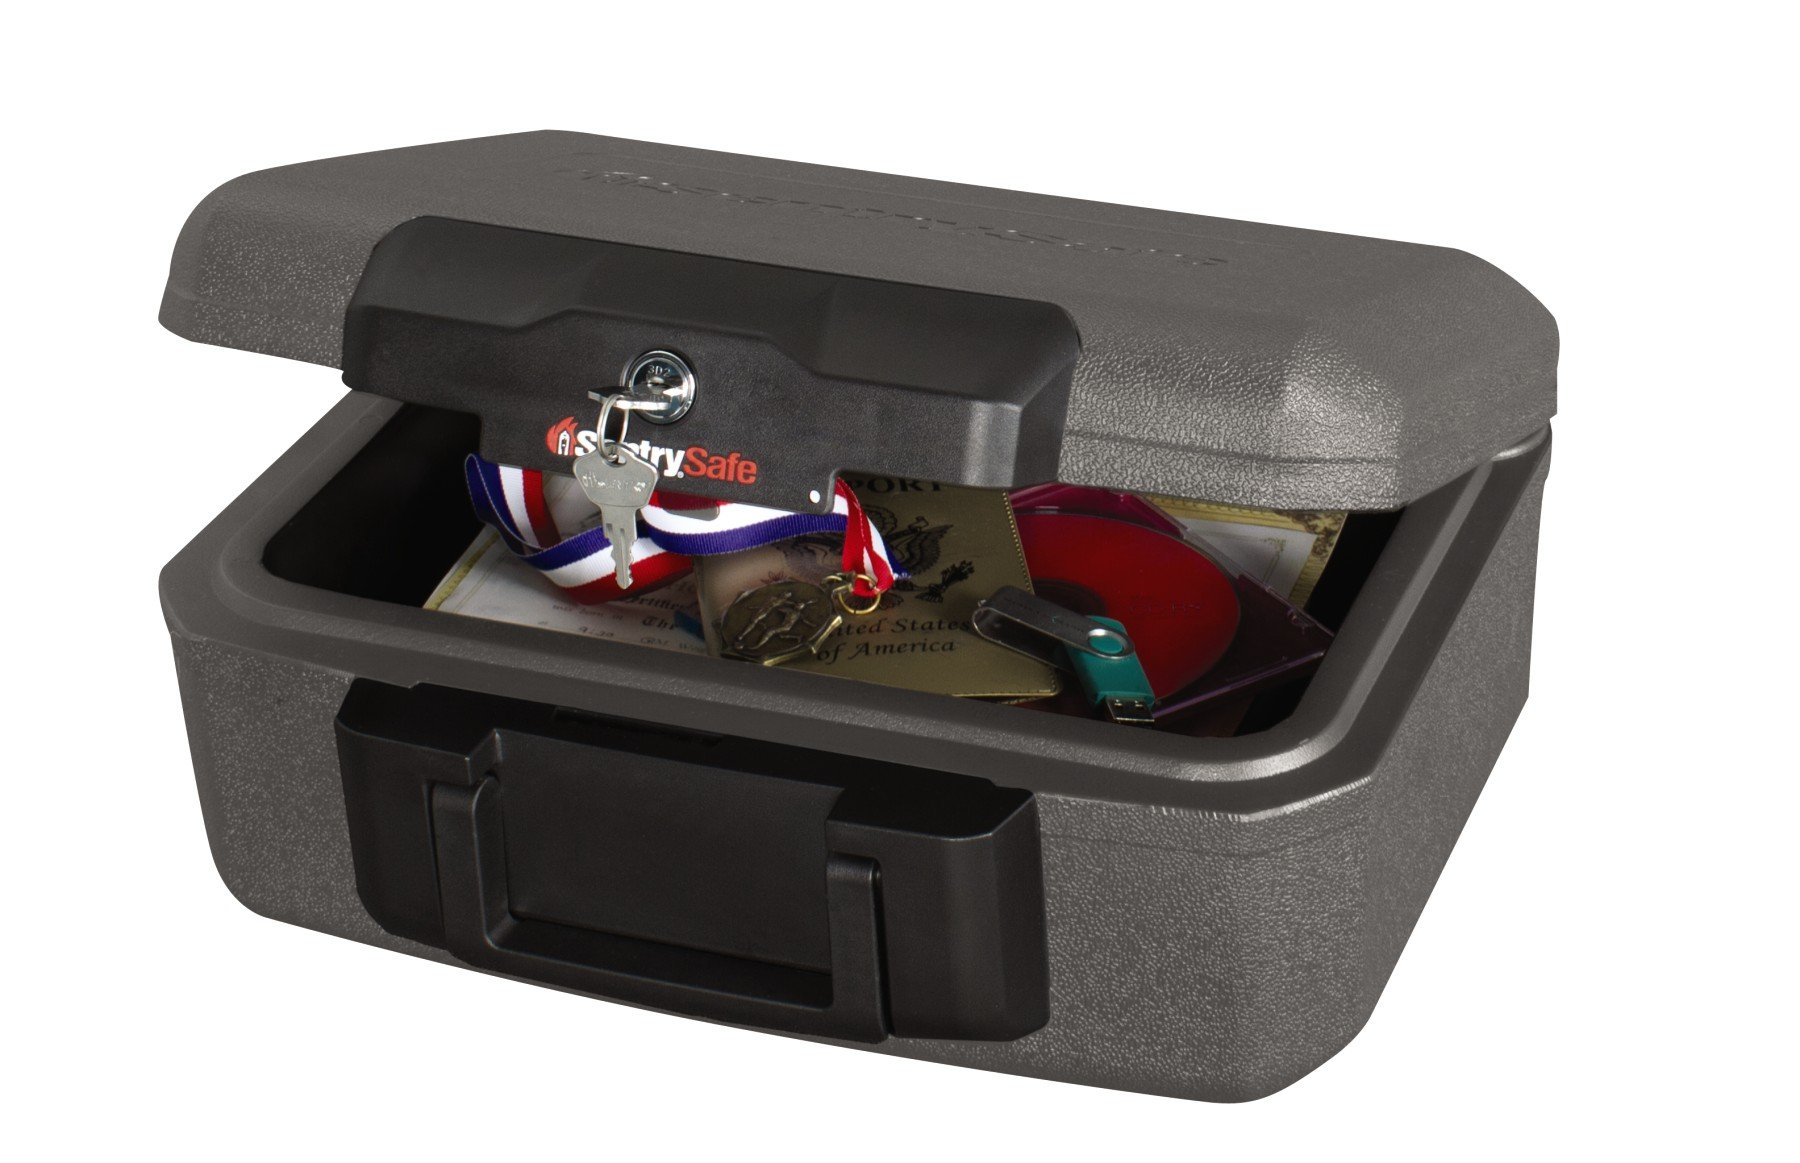 SentrySafe Fire Safe, Fire Resistant Chest, 0.18 Cubic Feet, Extra Small, 1210 by SentrySafe